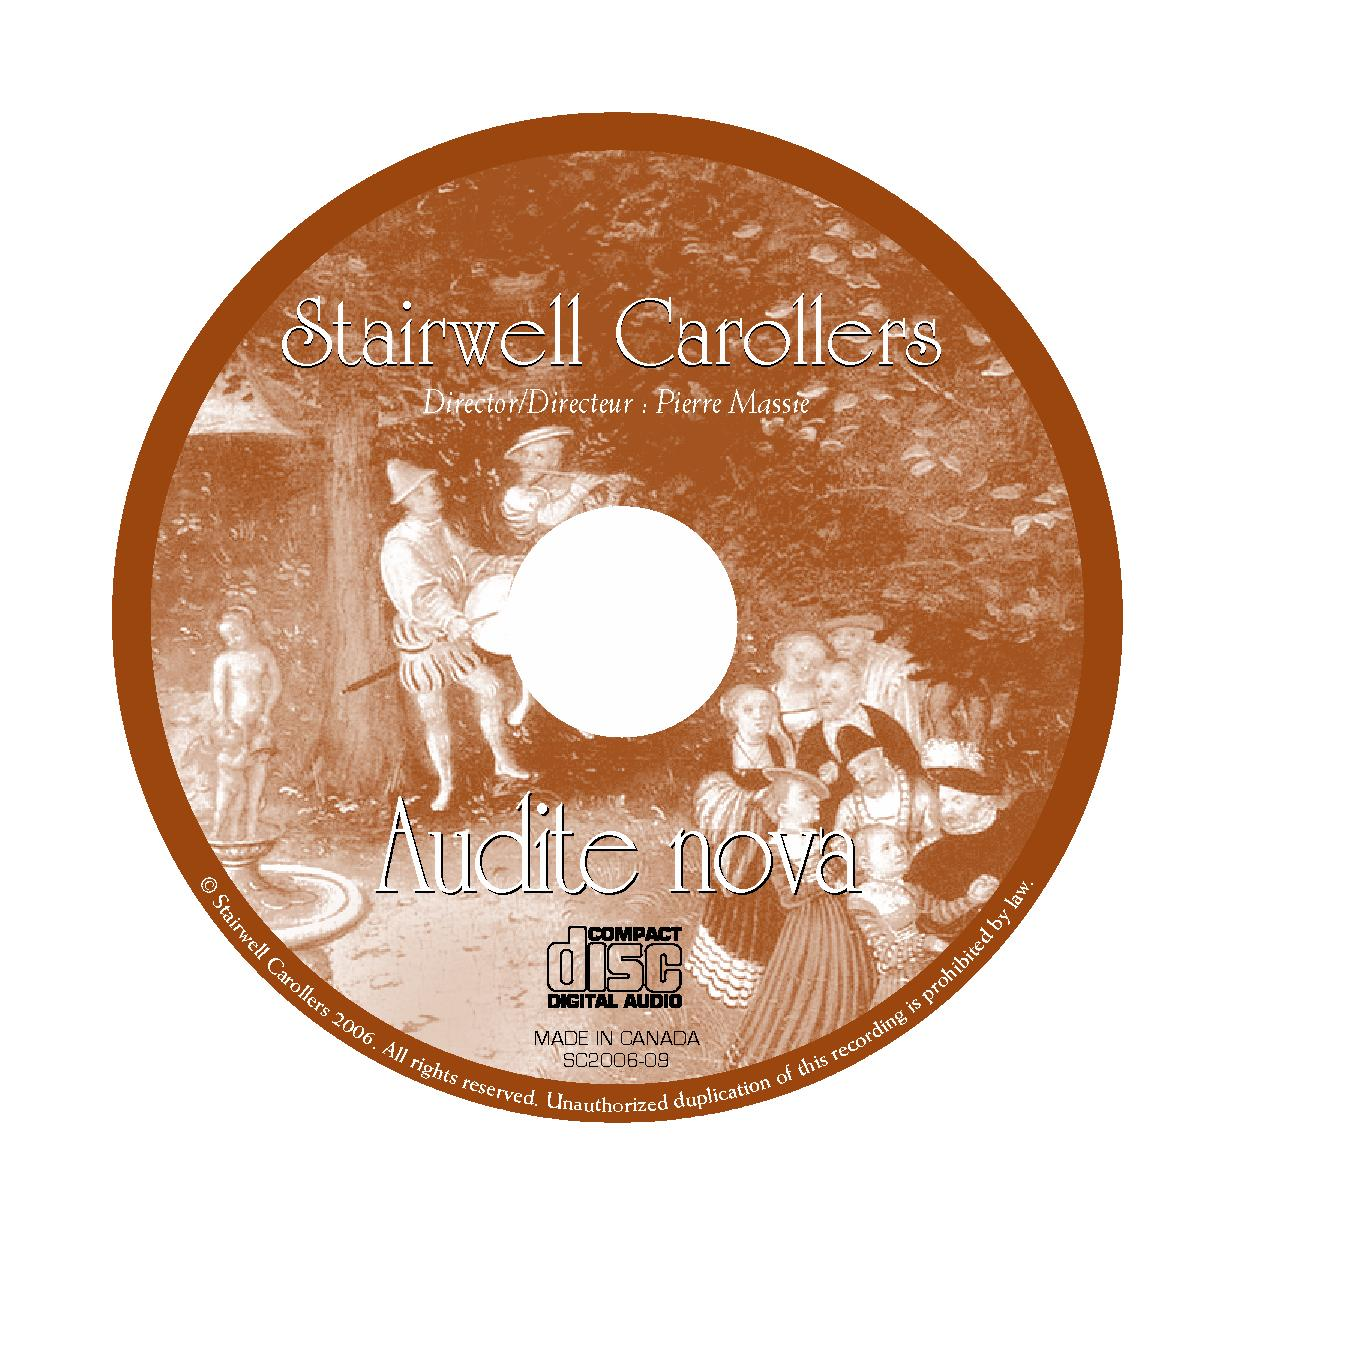 Stairwell Carollers Audite Nova Madrigal CD Label